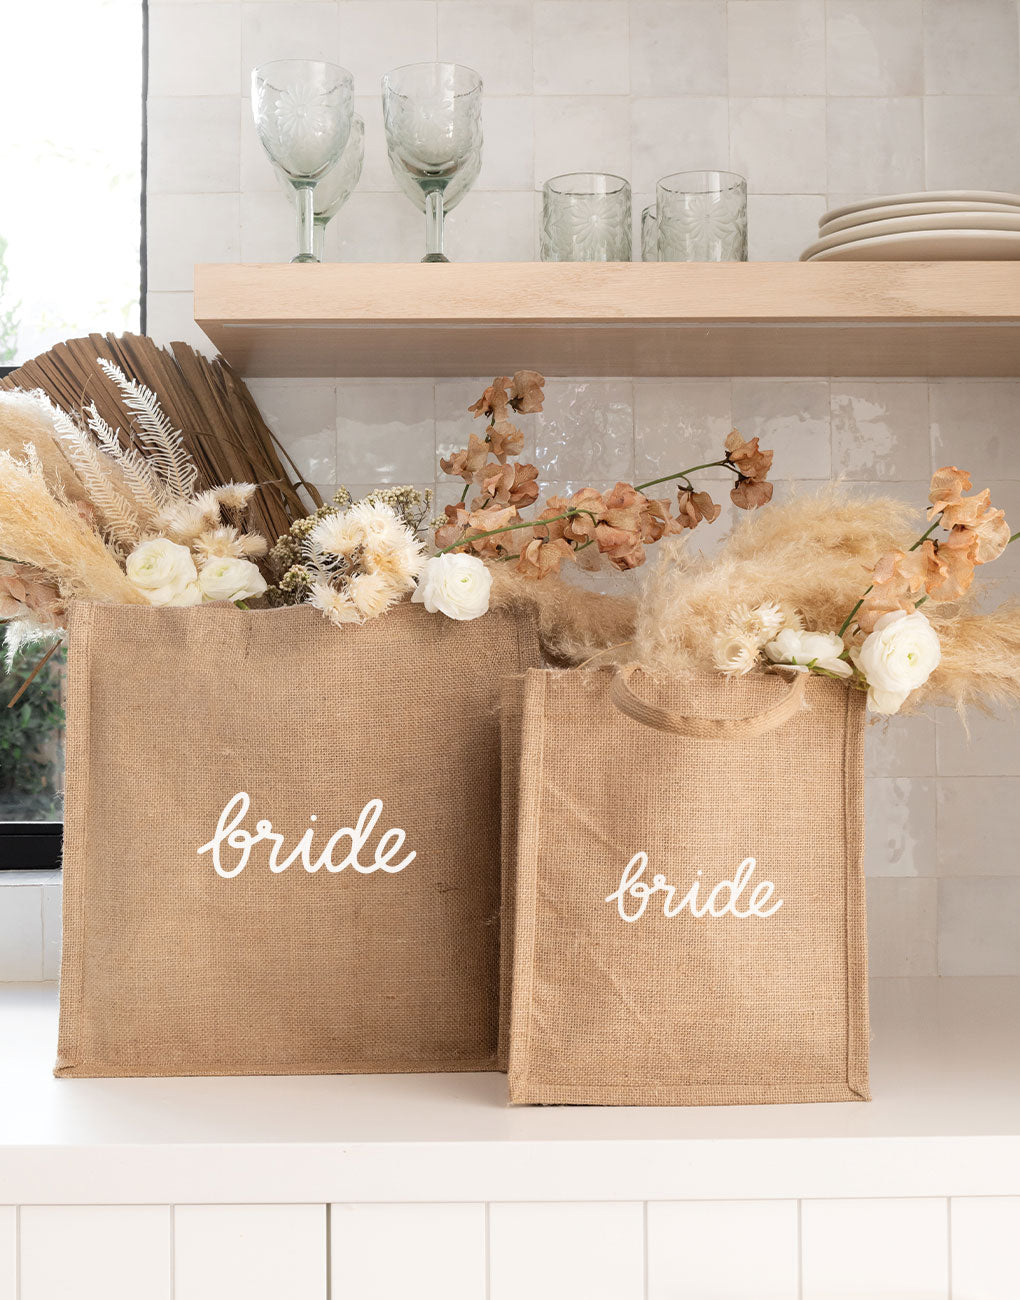 Medium Bride Reusable Gift Tote In White Font | The Little Market